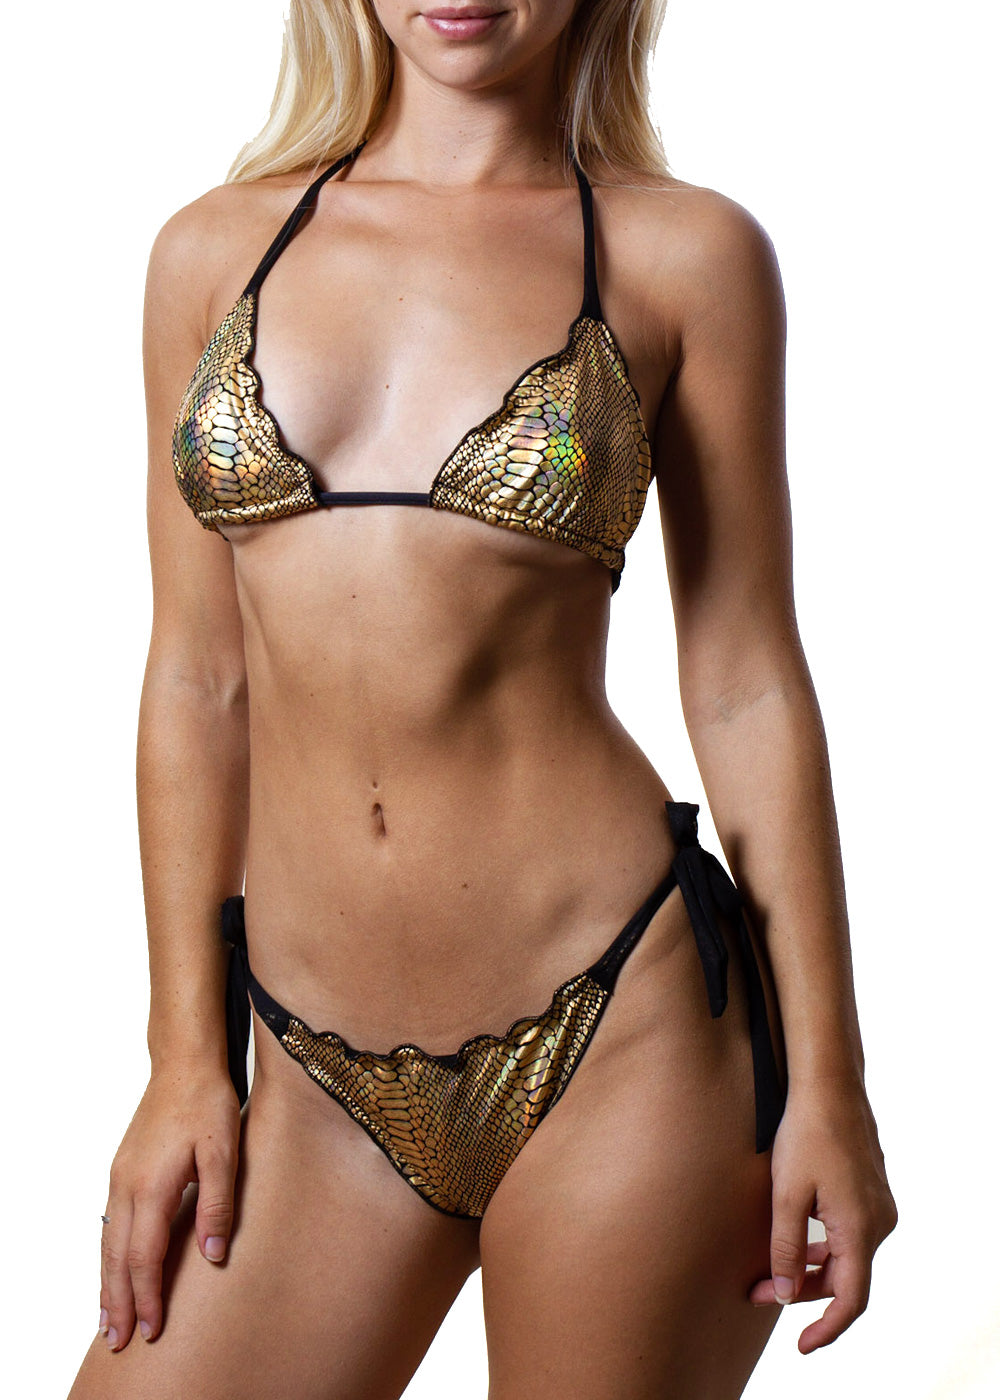 Georgia gold snakeprint black mesh triangle bikini top